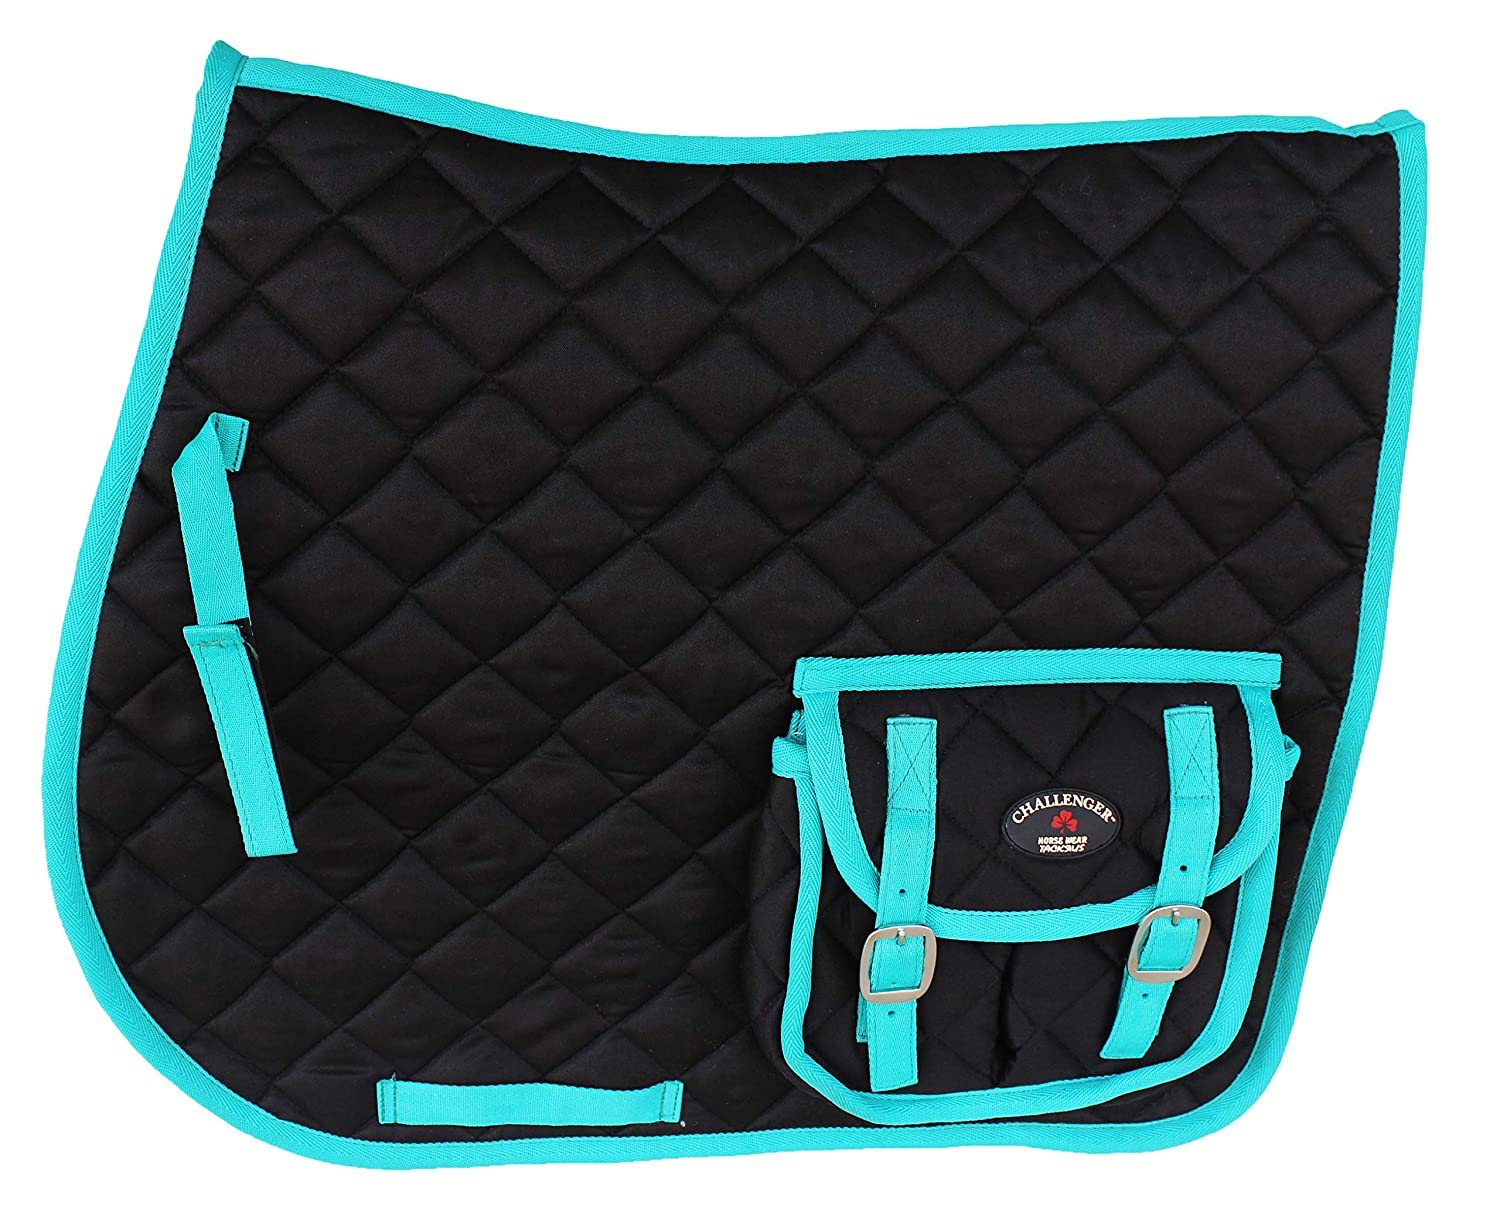 Black Teal Horse Quilted English Saddle PAD Trail Pockets 72113-116